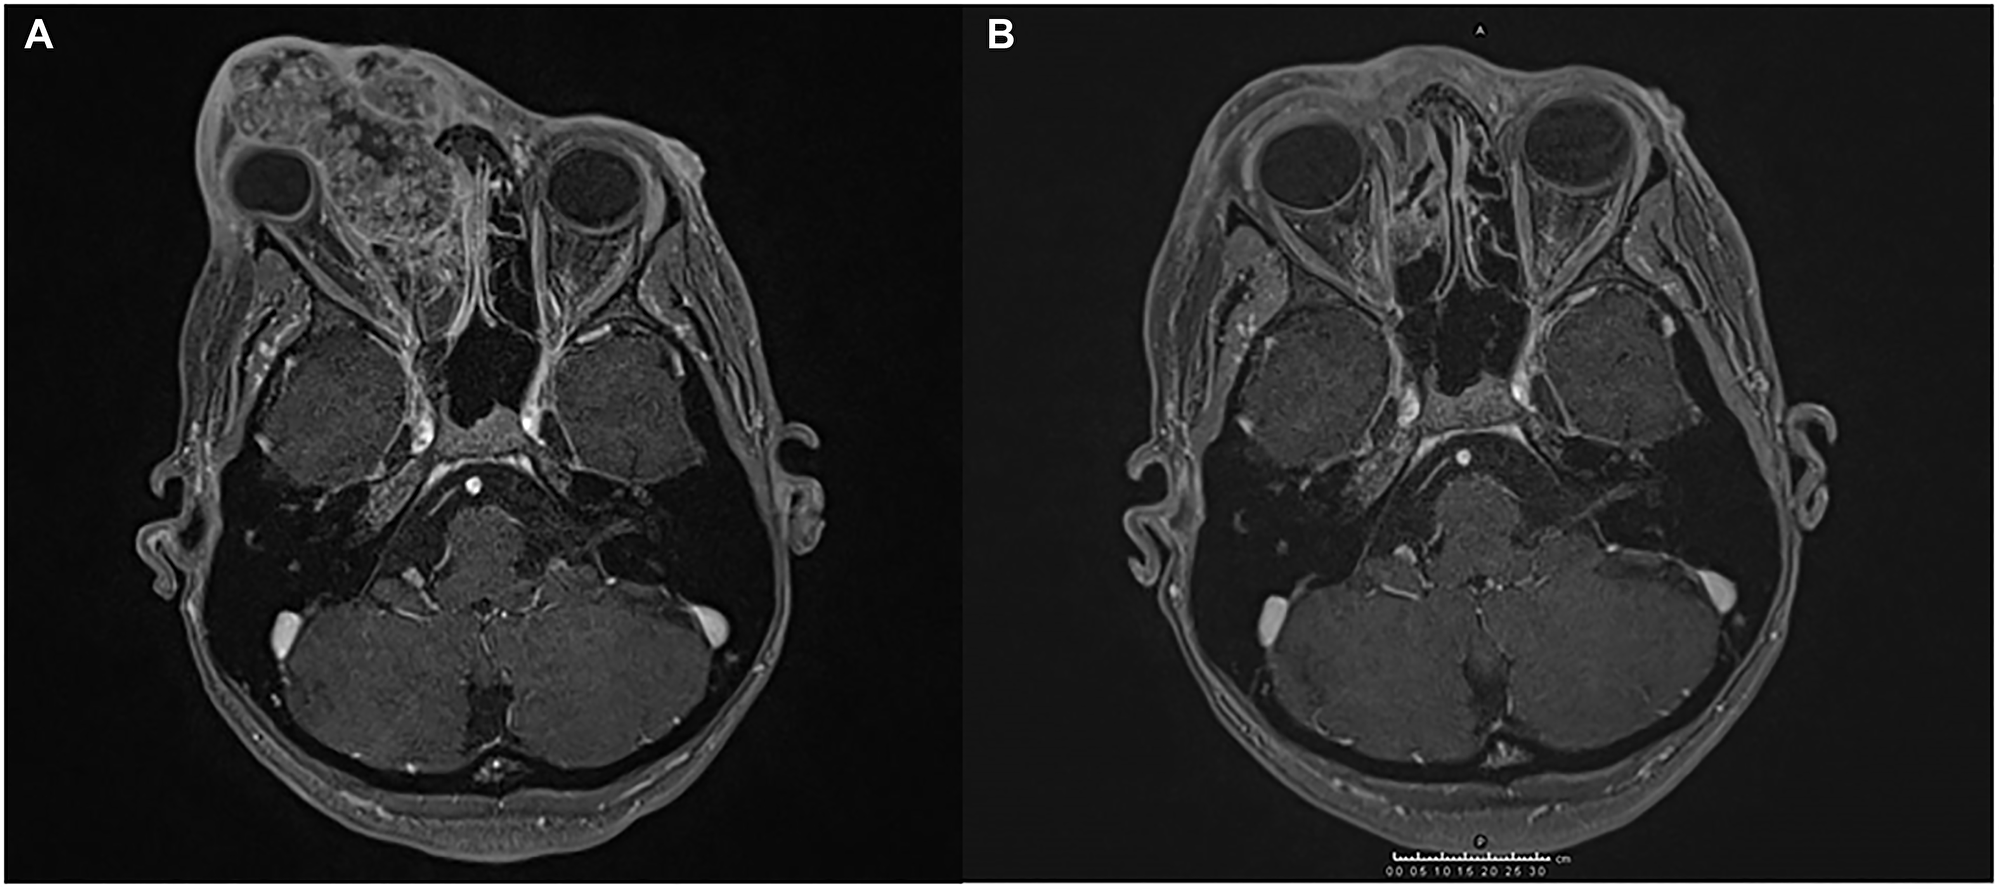 Magnetic resonance imaging (MRI) showing the response of SCC to the treatment administered.